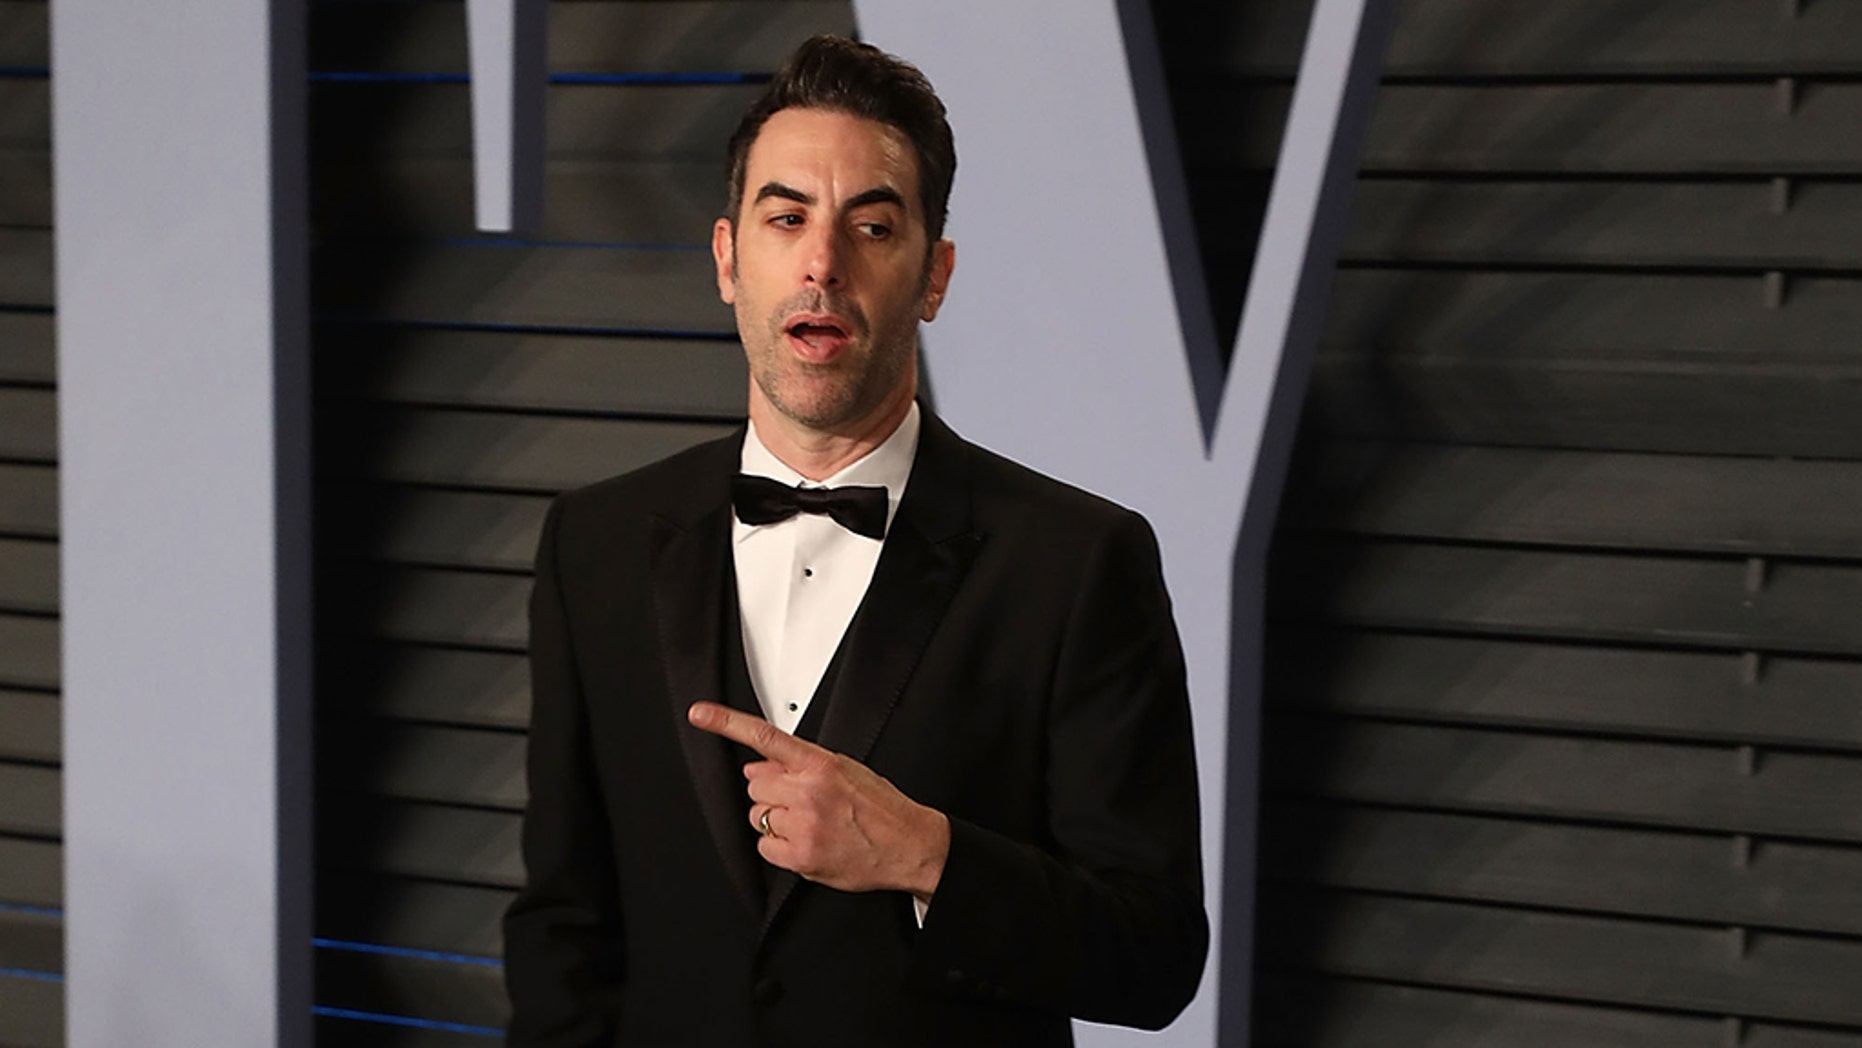 BEVERLY HILLS, CA - MARCH 04: Actor Sacha Baron Cohen attends the 2018 Vanity Fair Oscar Party hosted by Radhika Jones at the Wallis Annenberg Center for the Performing Arts on March 4, 2018 in Beverly Hills, California. (Photo by Taylor Hill/FilmMagic)